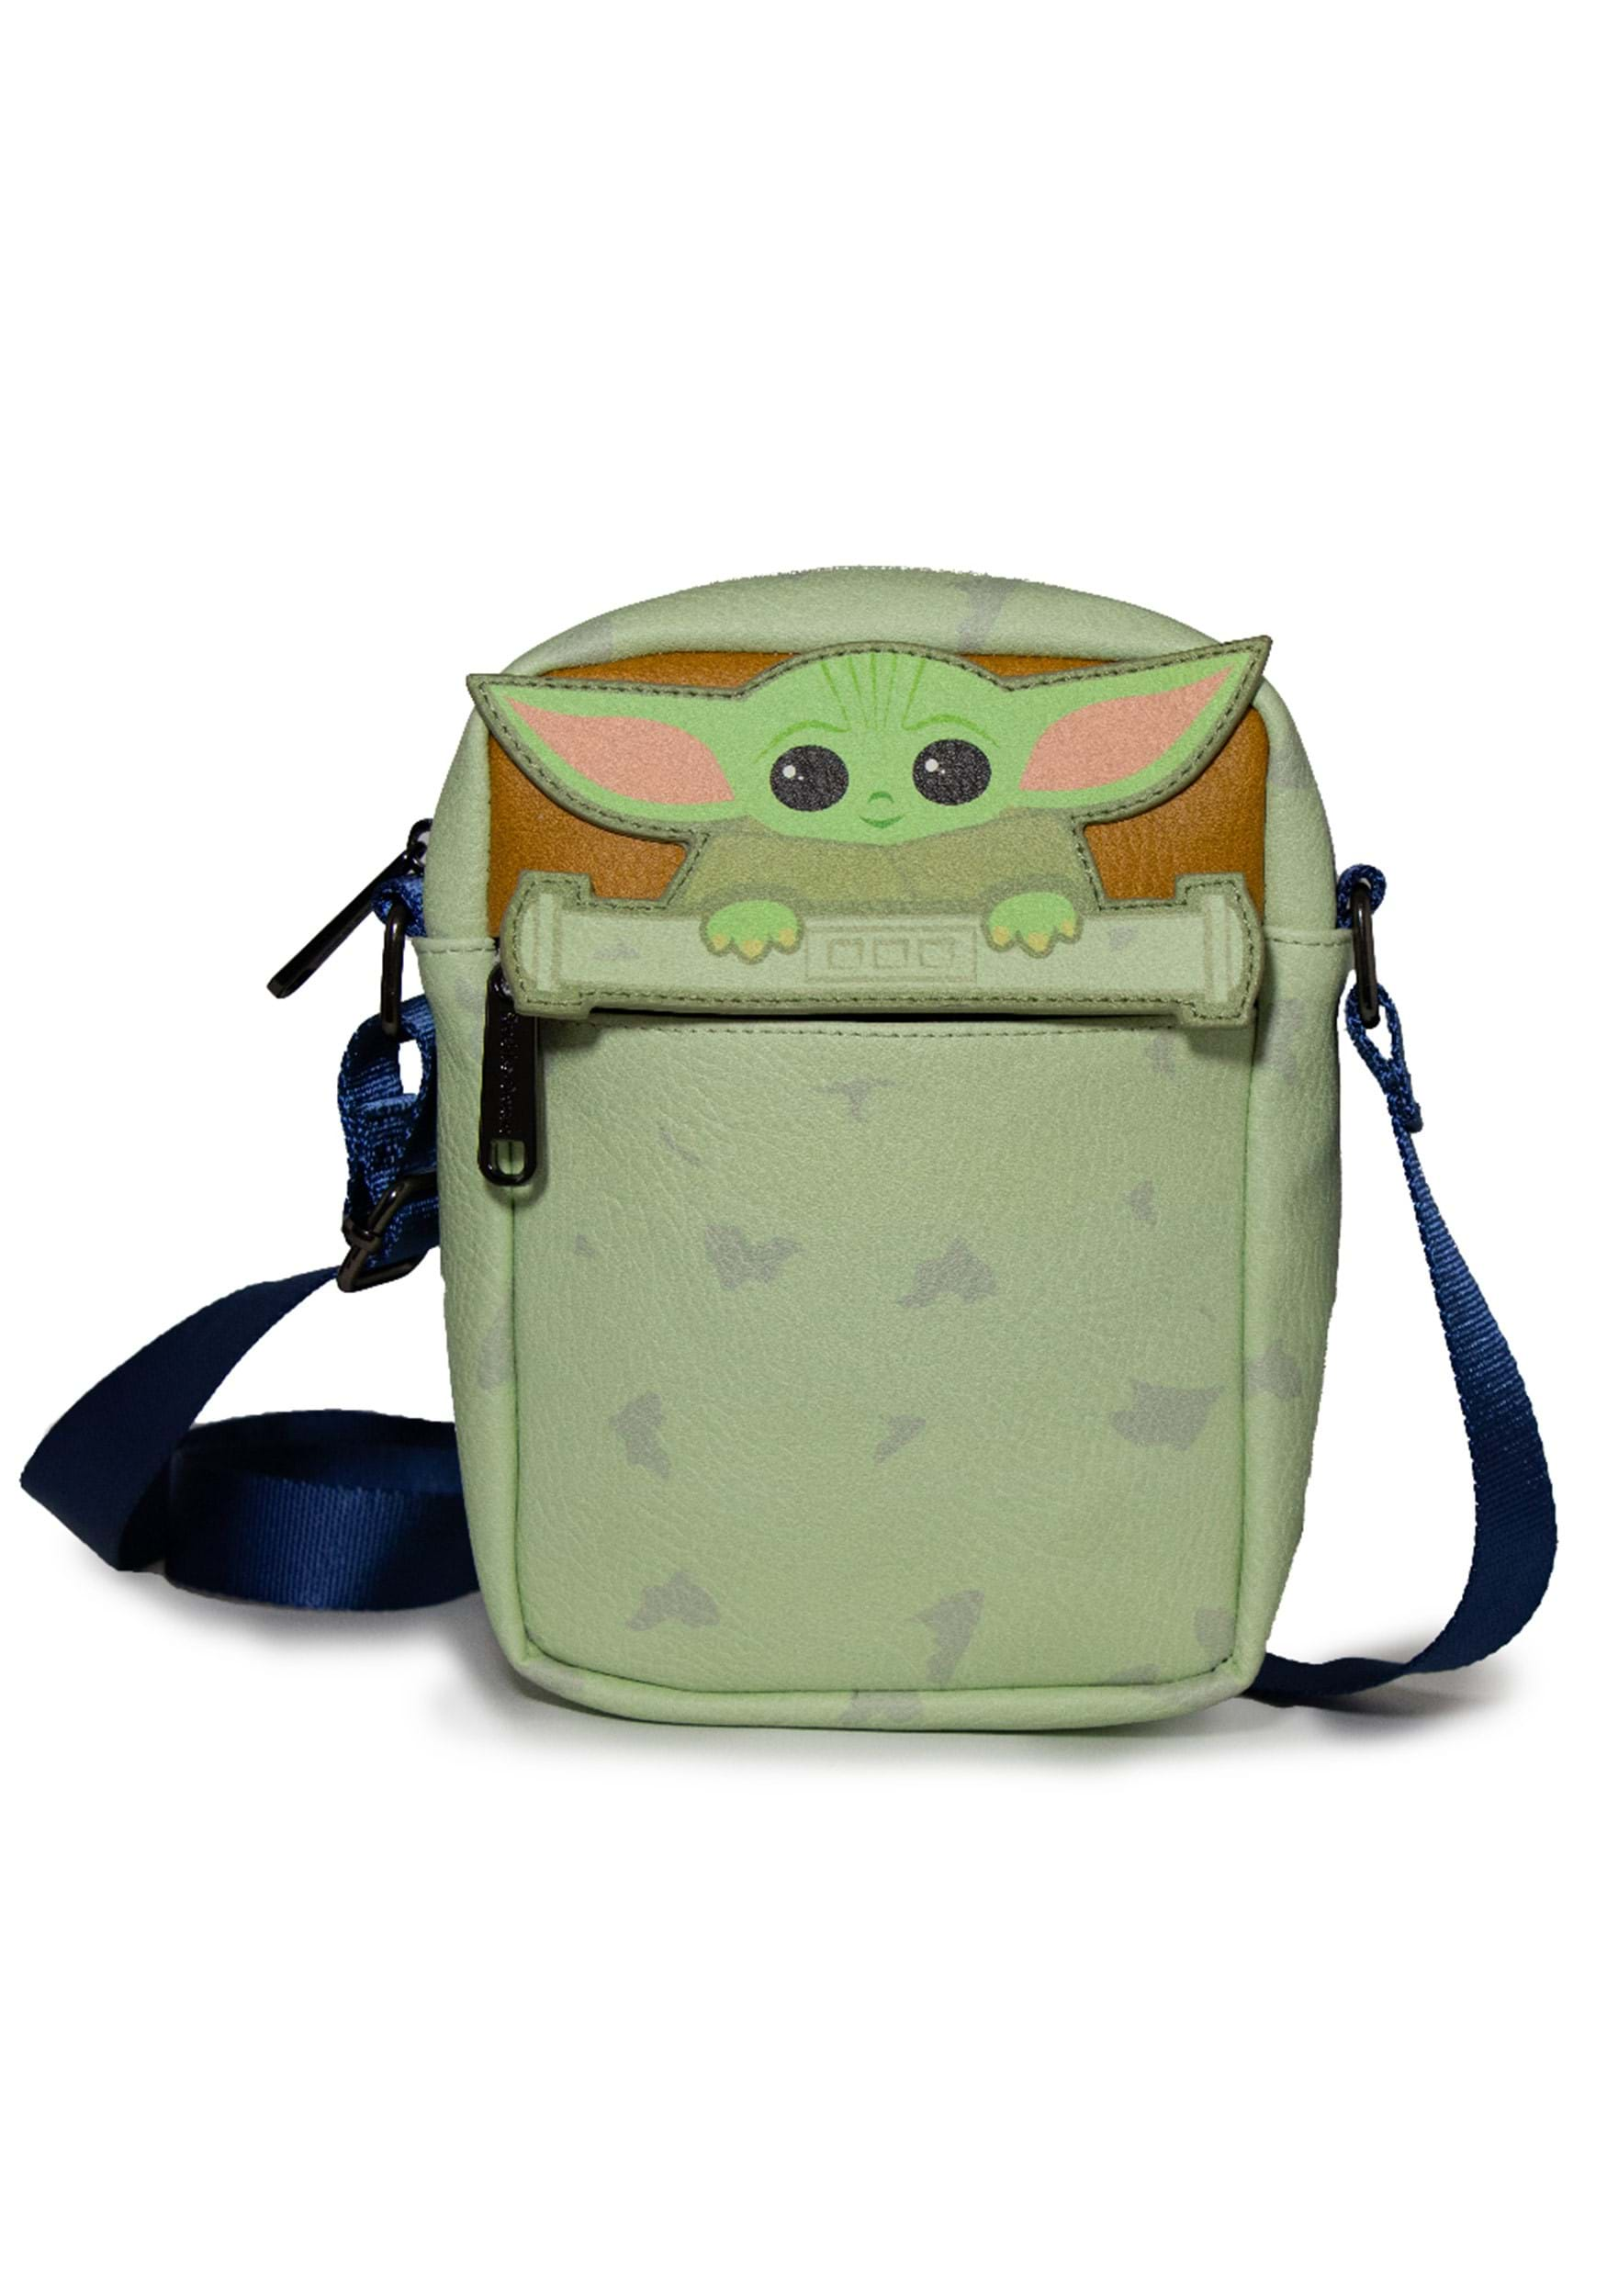 The Child Star Wars Crossbody Bag Purse